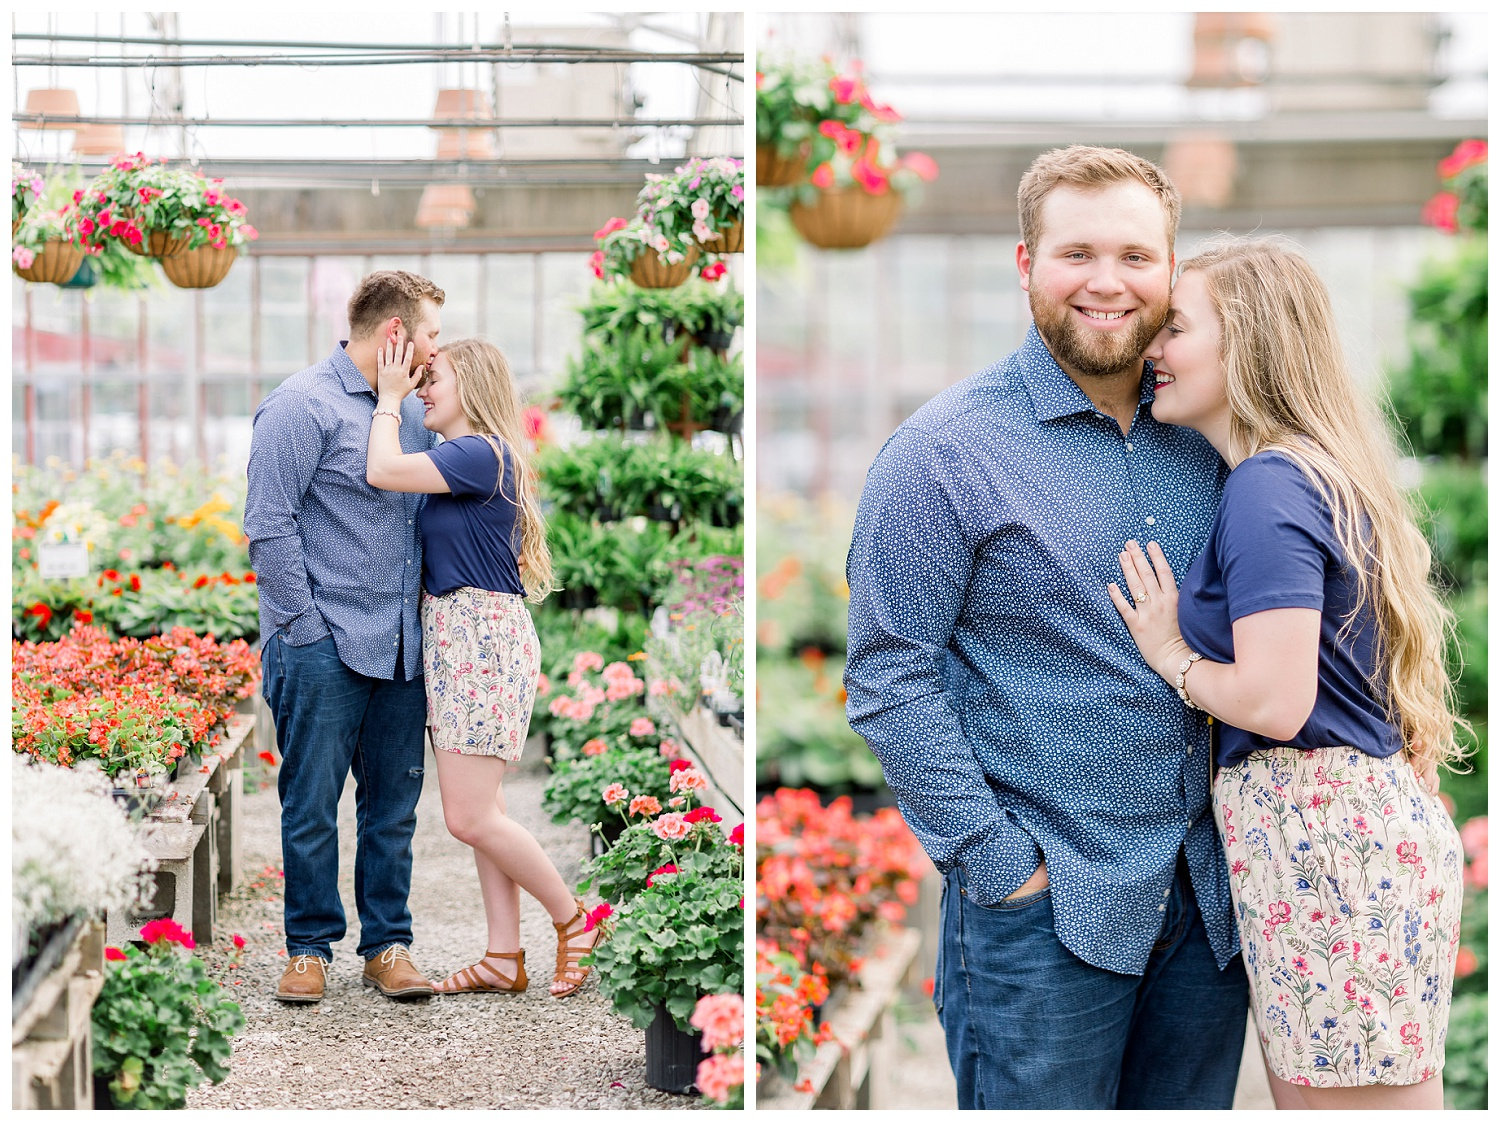 Engagement session at Farrand Farms Independence Missouri